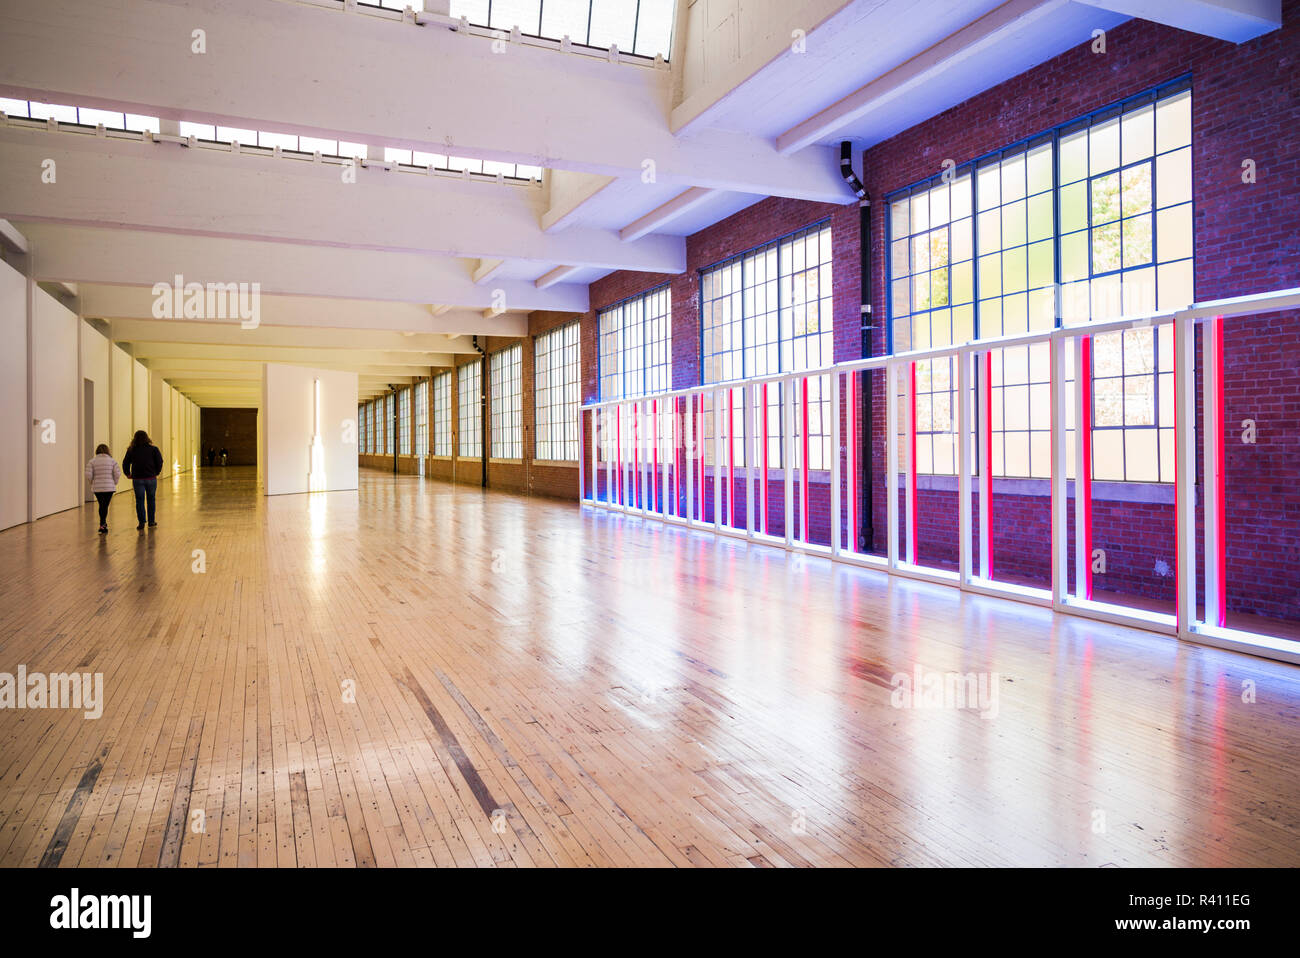 Dan Flavin Stock Photos & Dan Flavin Stock Images - Alamy